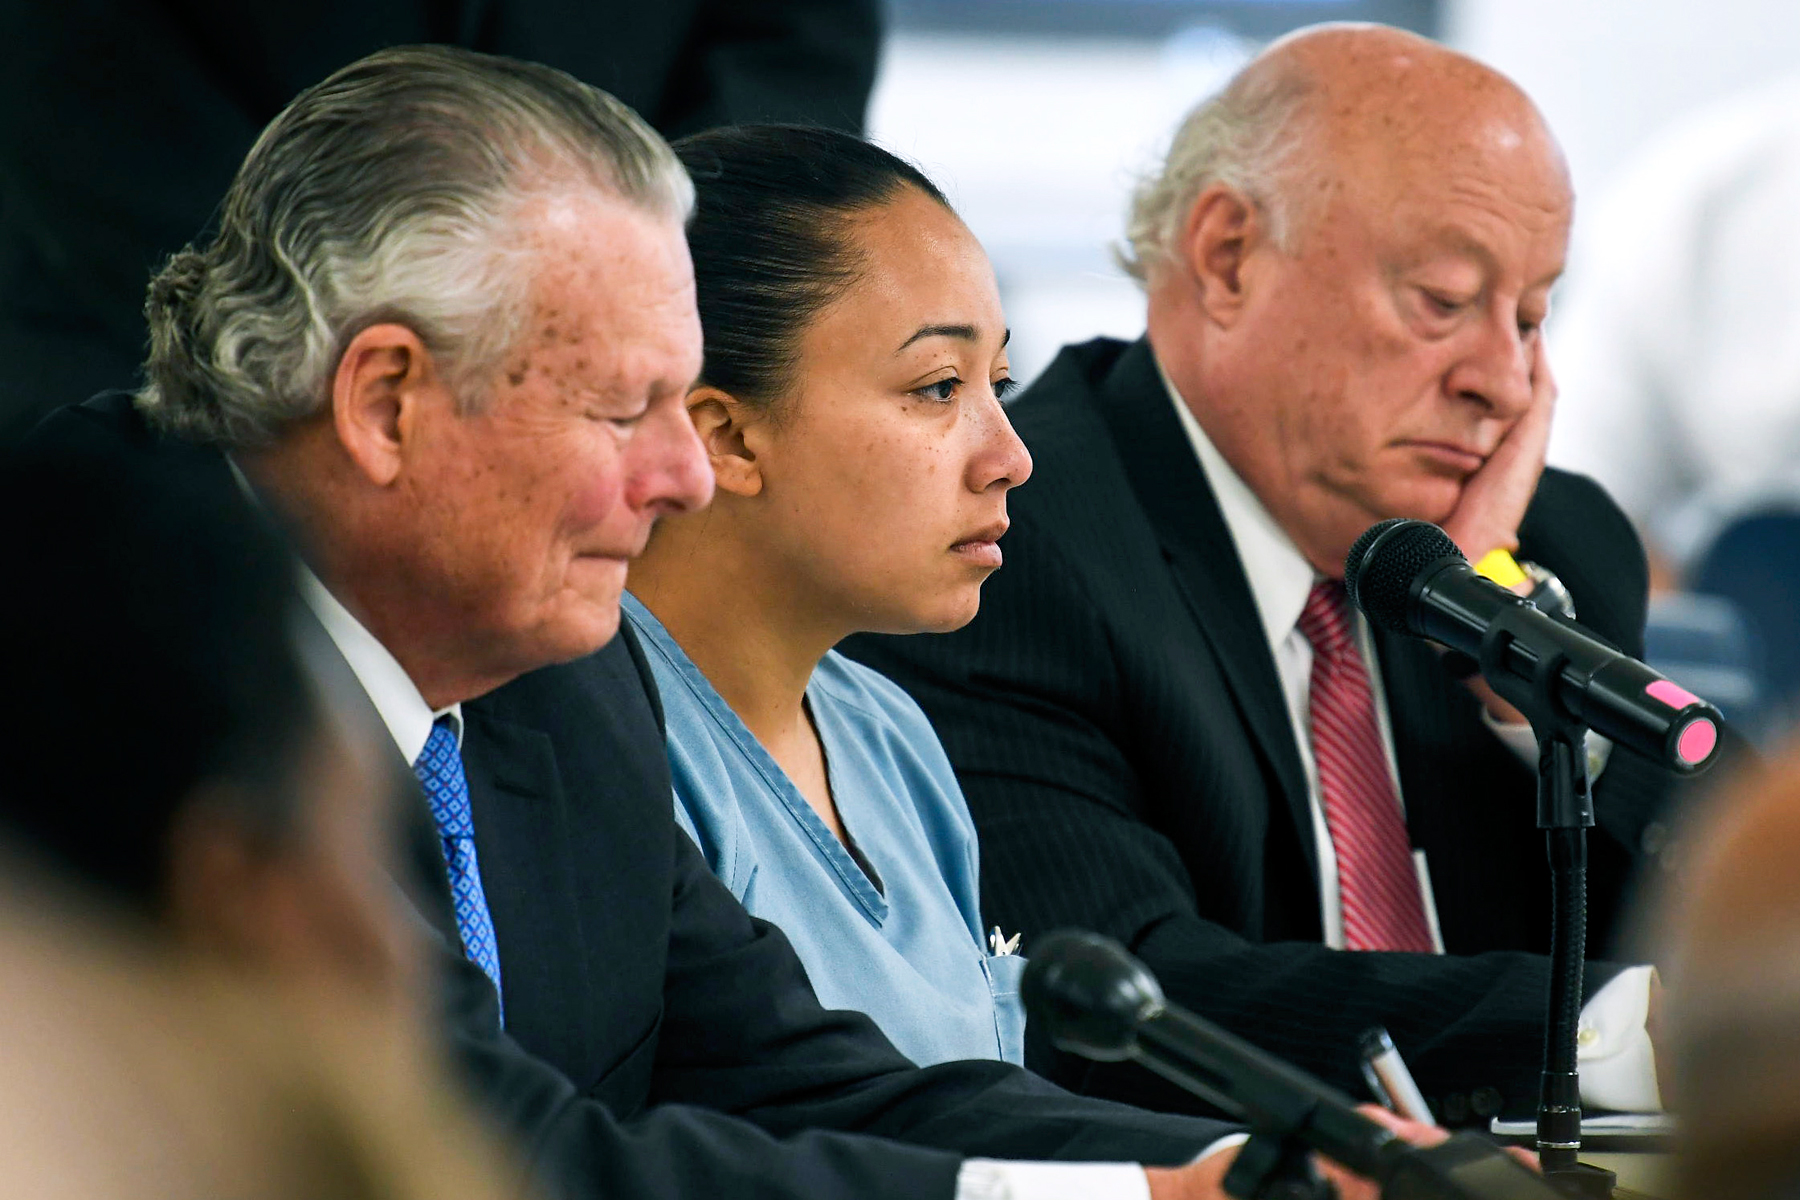 Tennessee Governor Considering Clemency for Cyntoia Brown